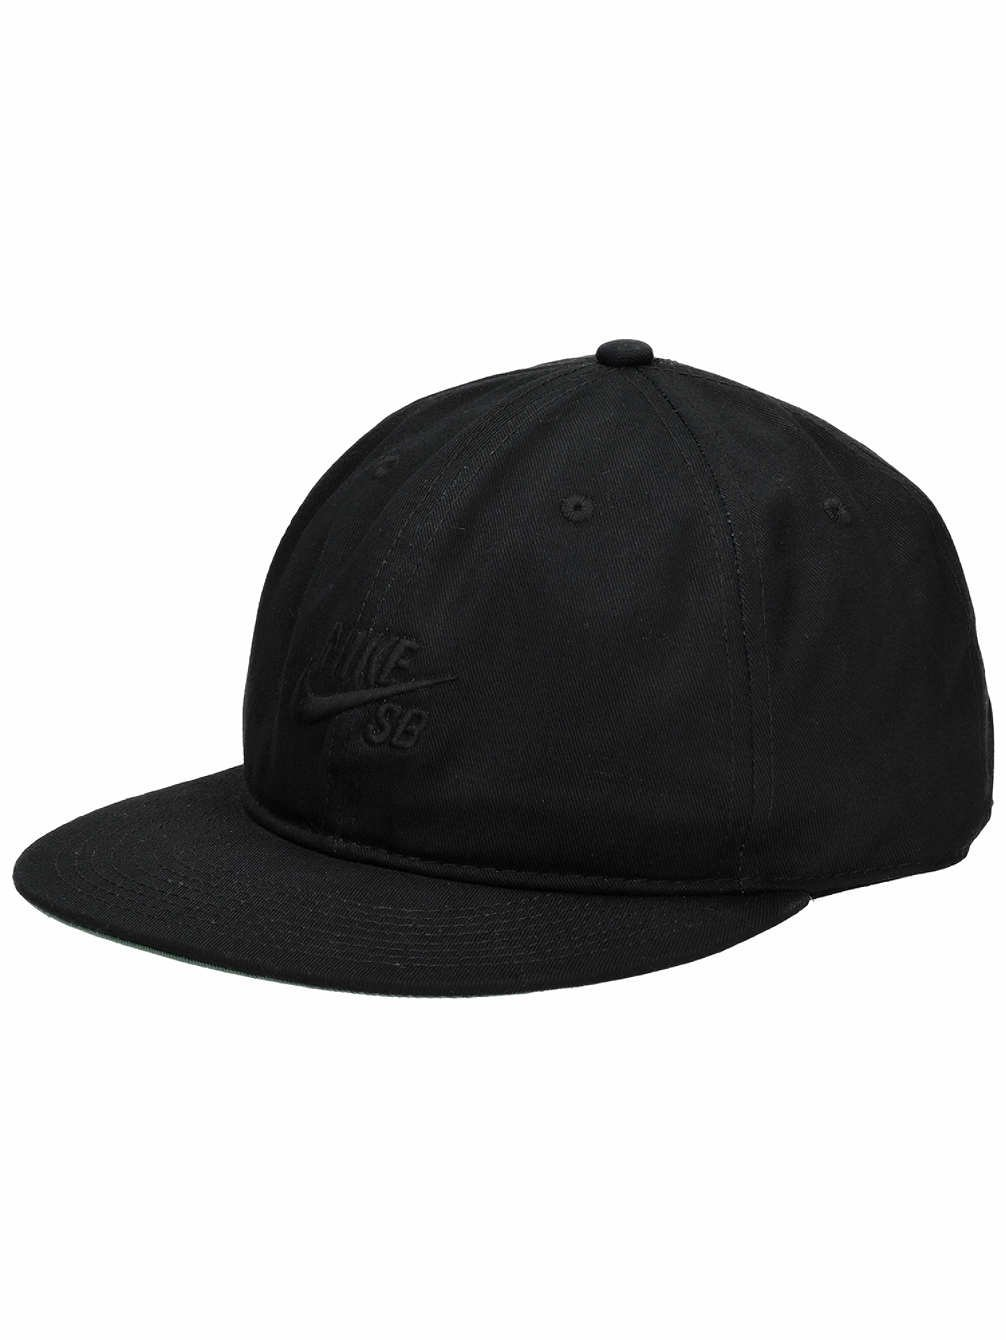 dc00ed15b81 Amazon.com  Nike SB Pro Vintage Snapback Hat (Black Pine  Green Black Black)  Sports   Outdoors